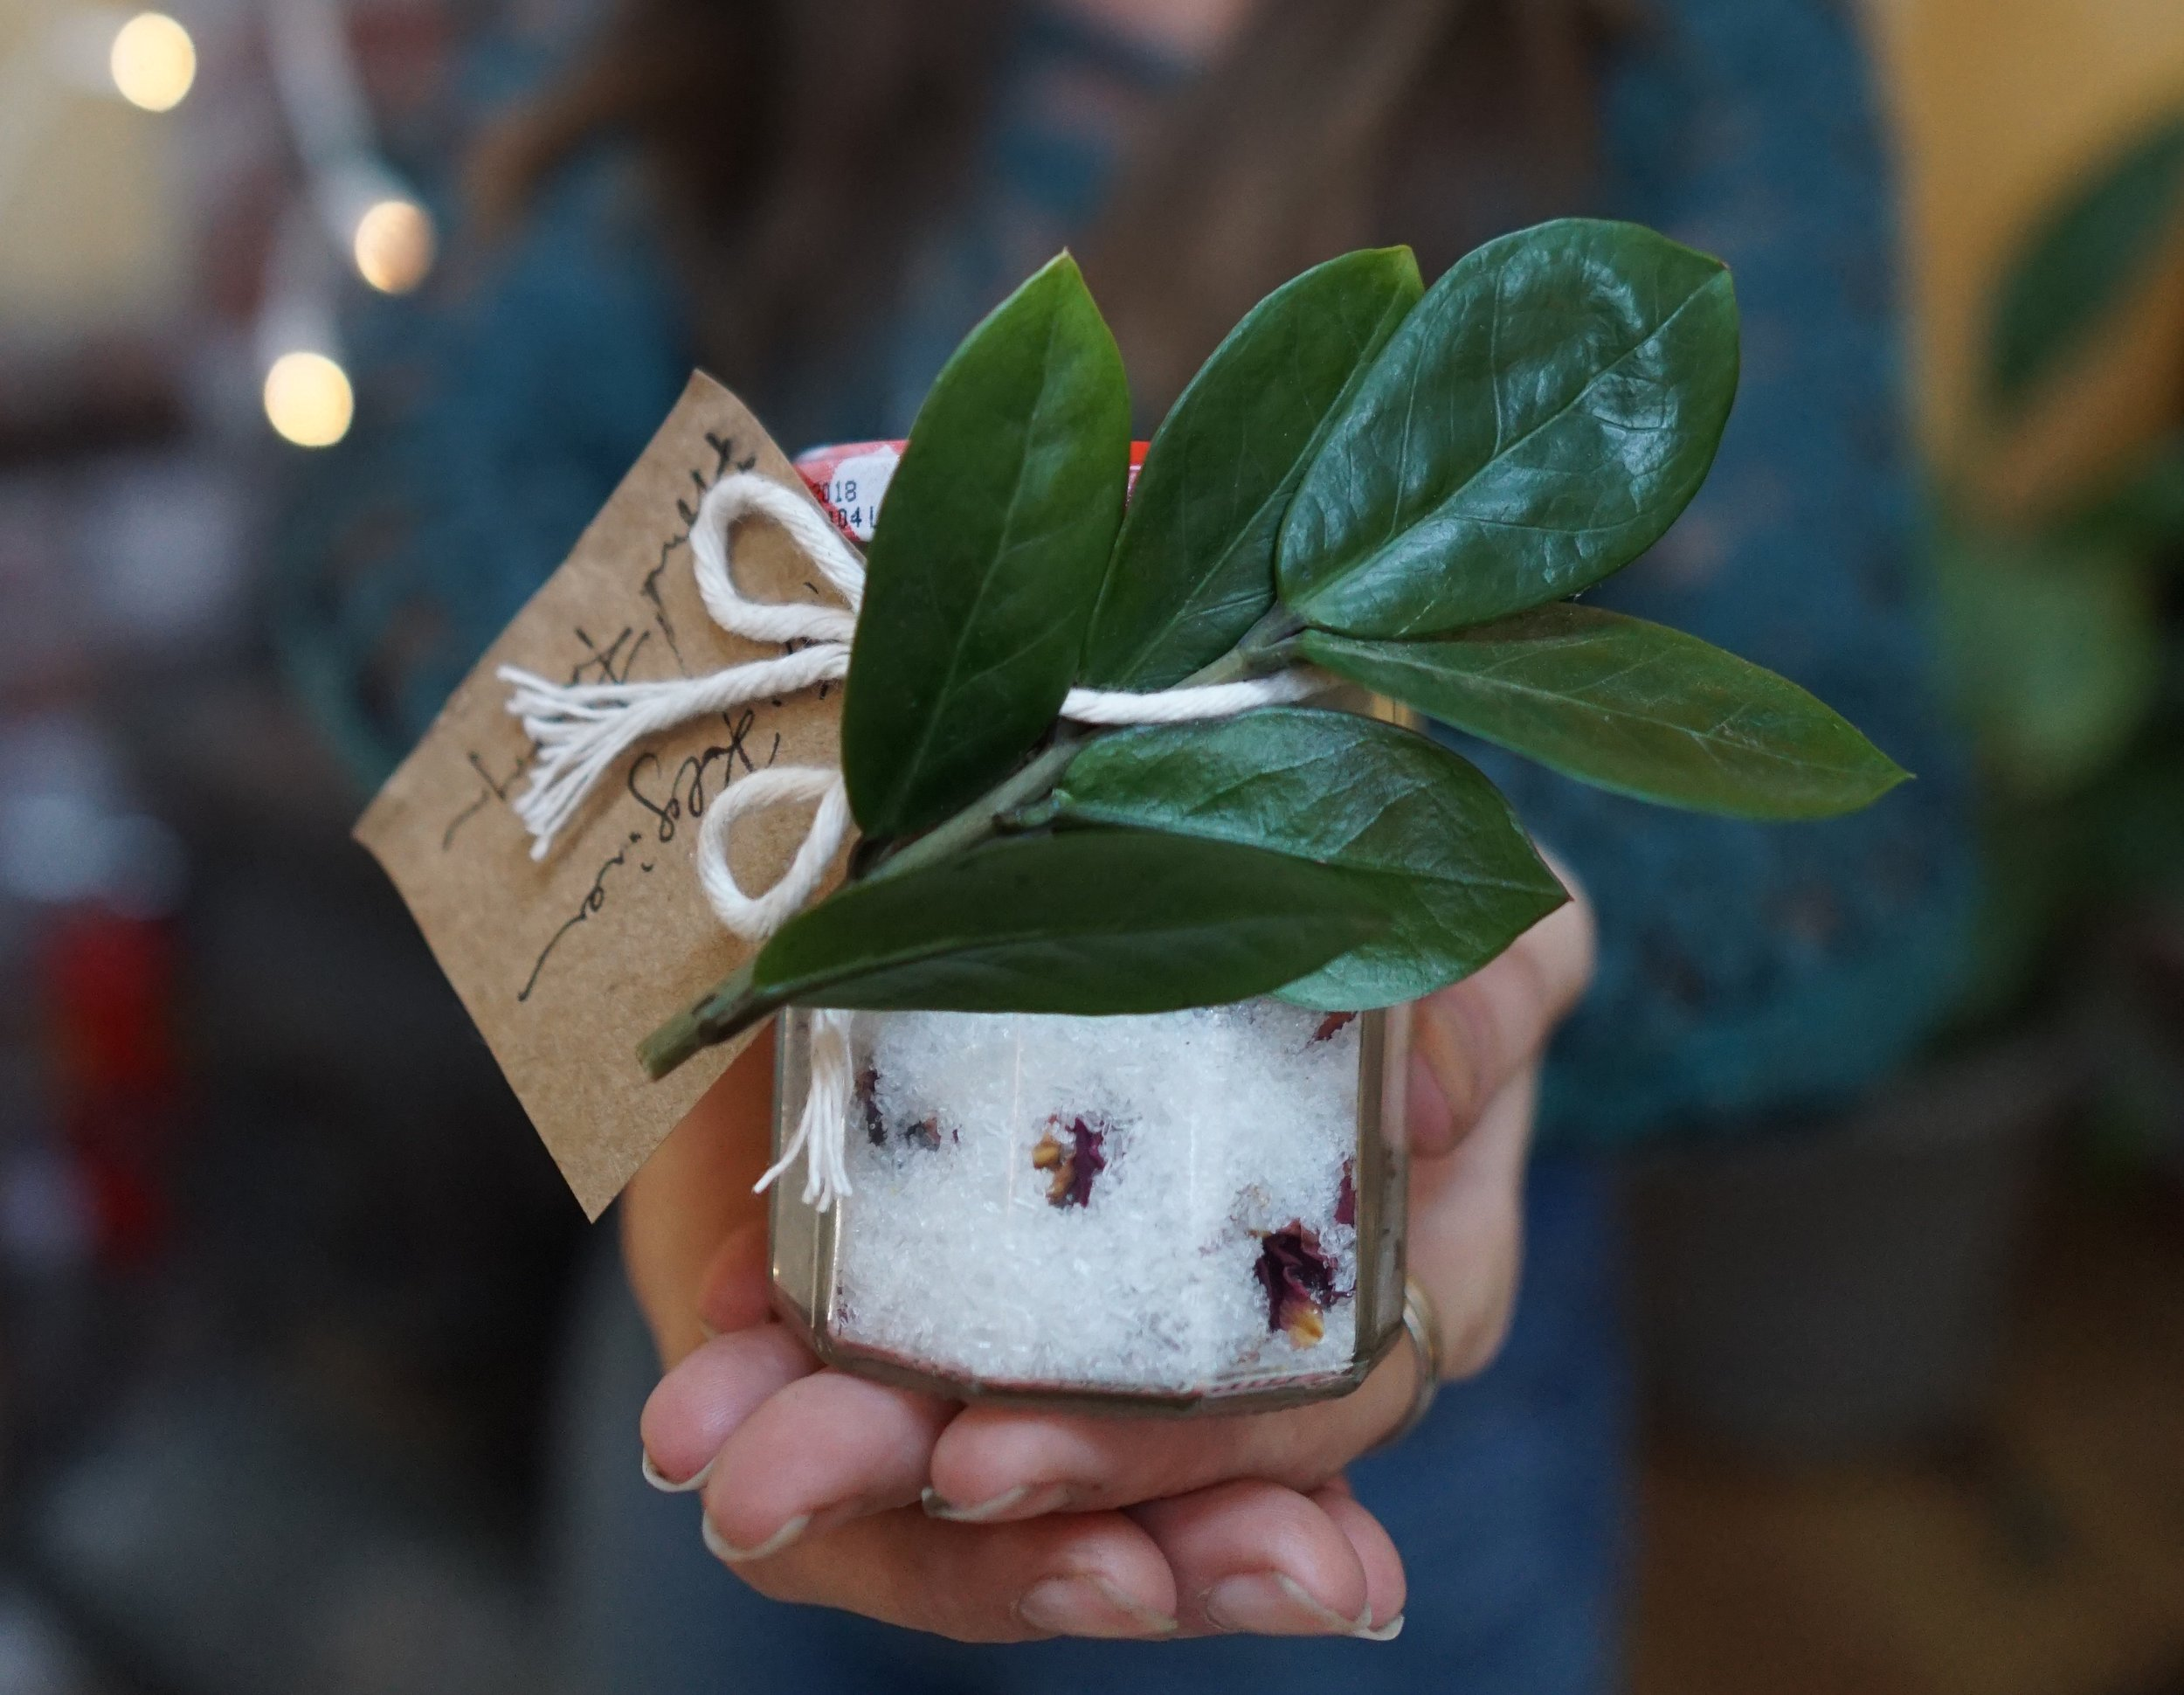 The ultimate guide to an eco friendly and zero waste Christmas from www.goingzerowaste.com #zerowaste #ecofriendly #christmas #holidays